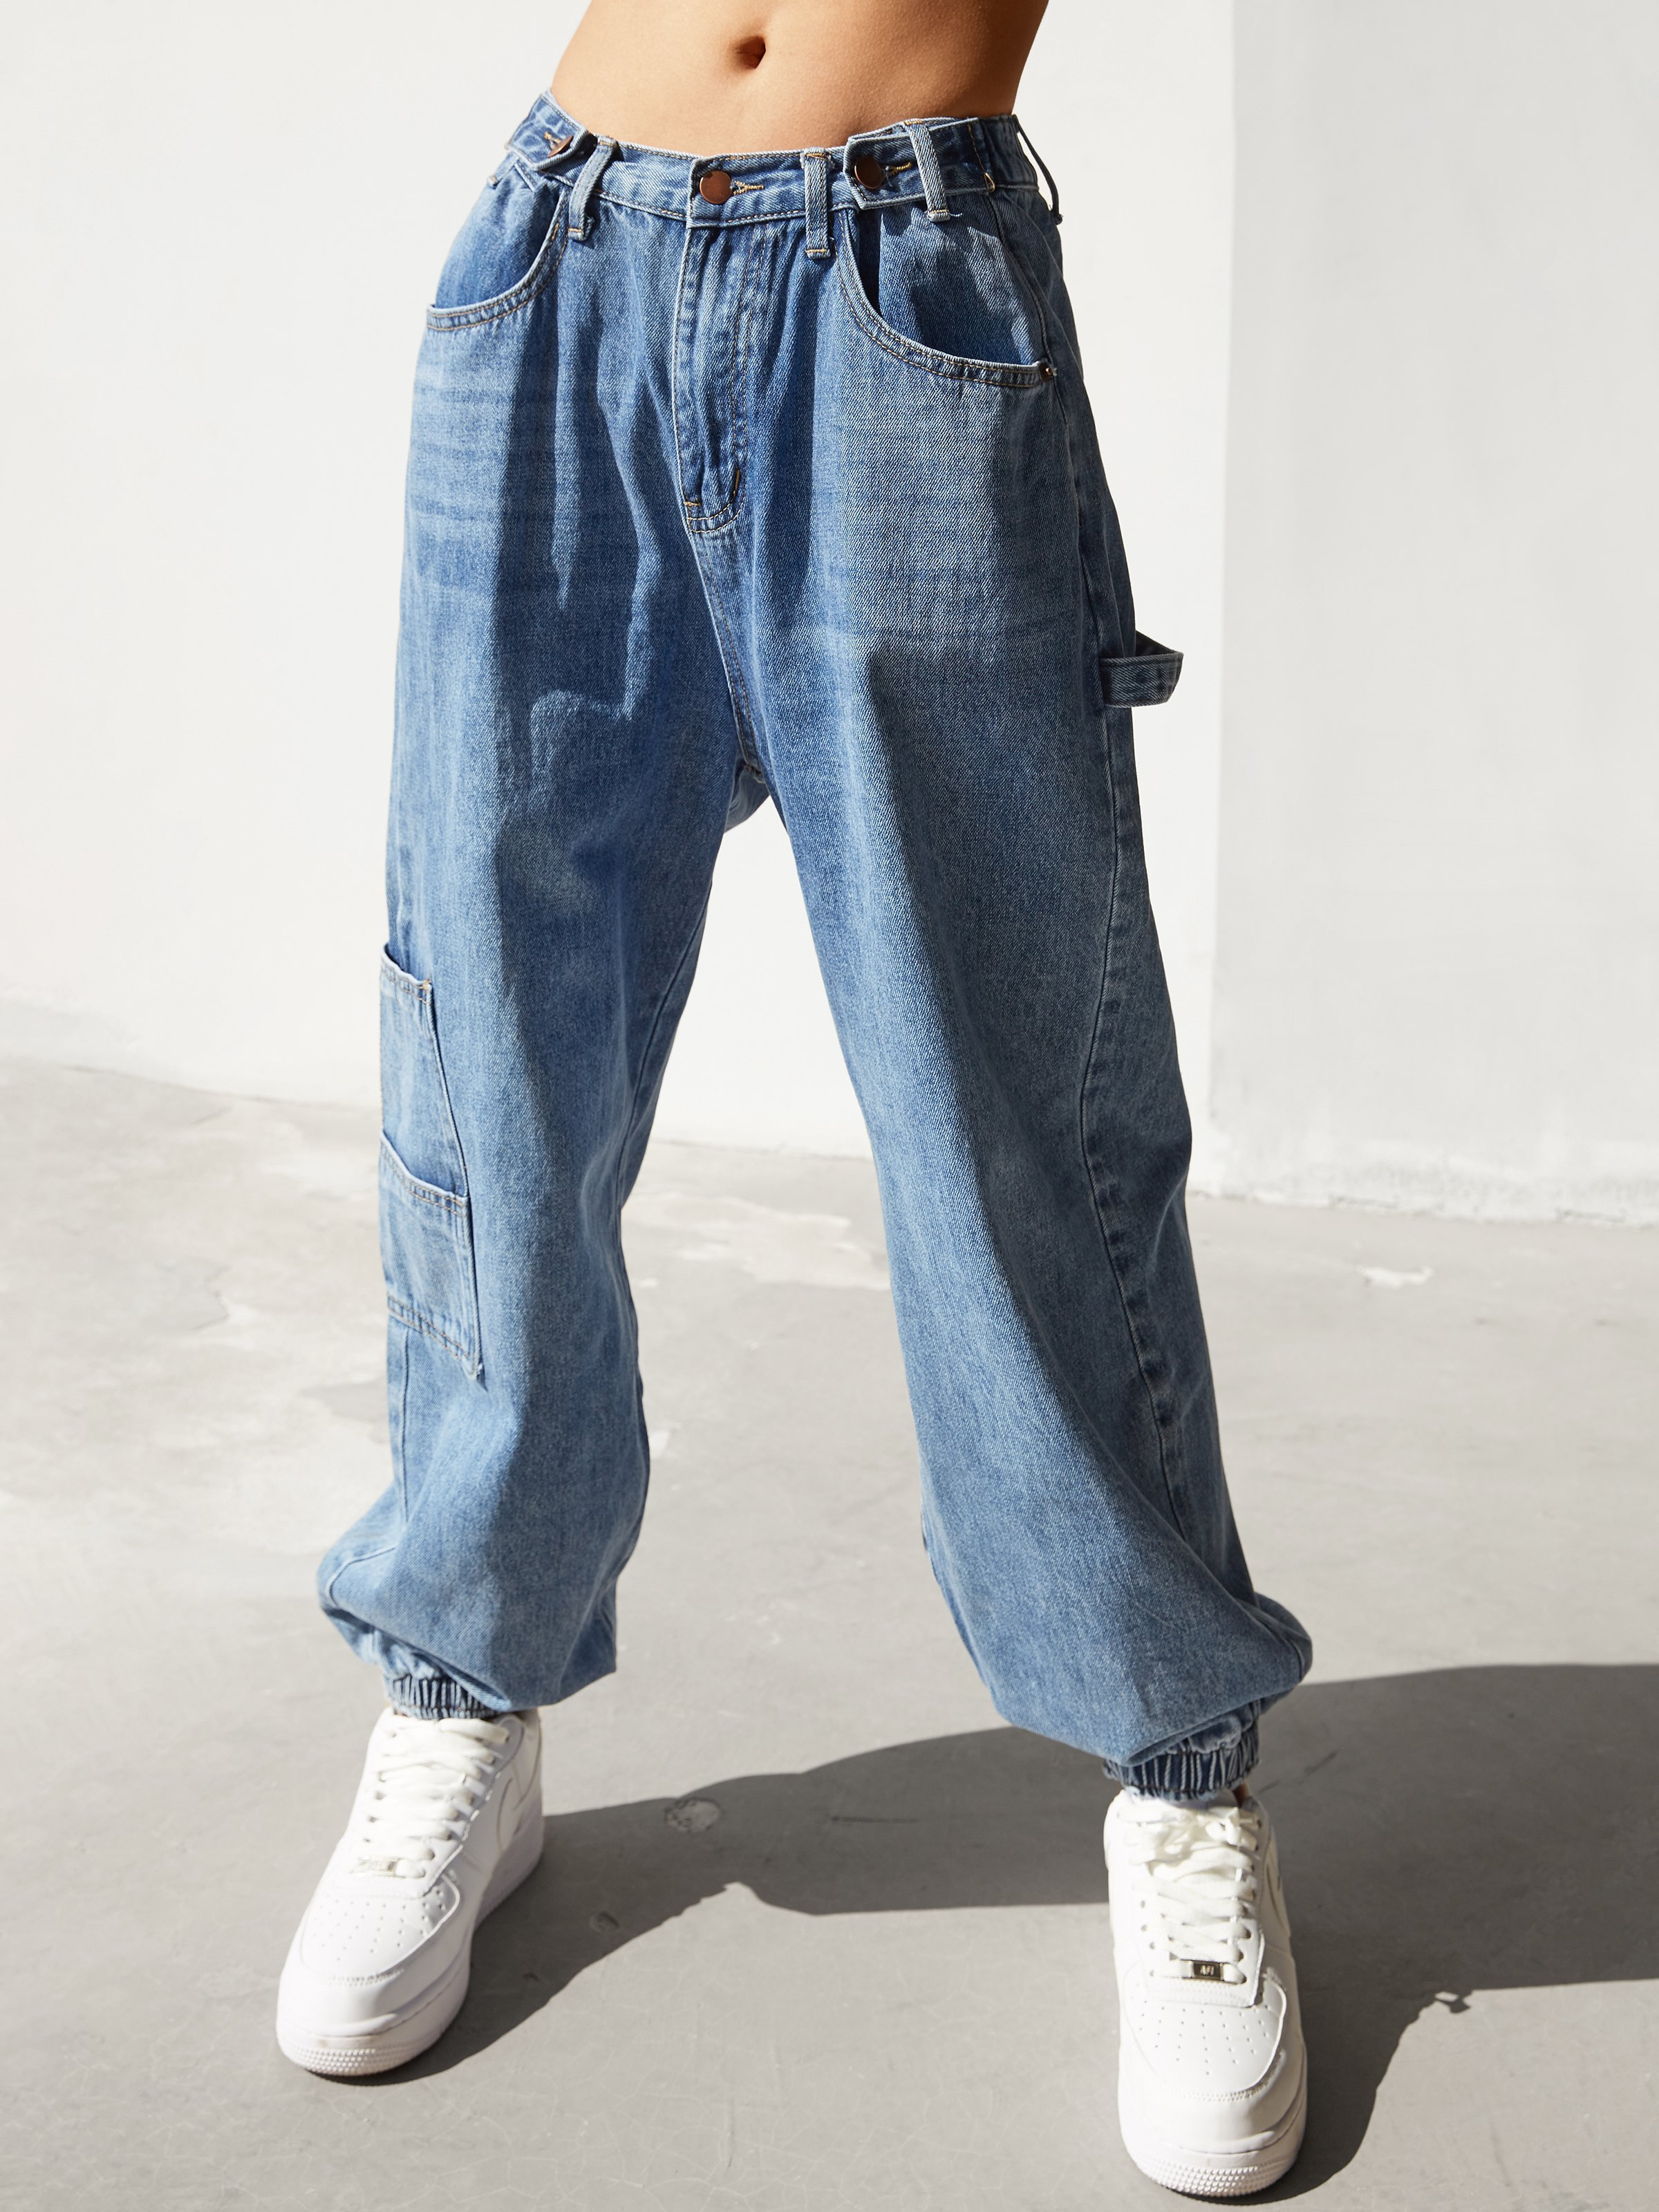 High Waist Tapered Cargo Jeans - Blue L